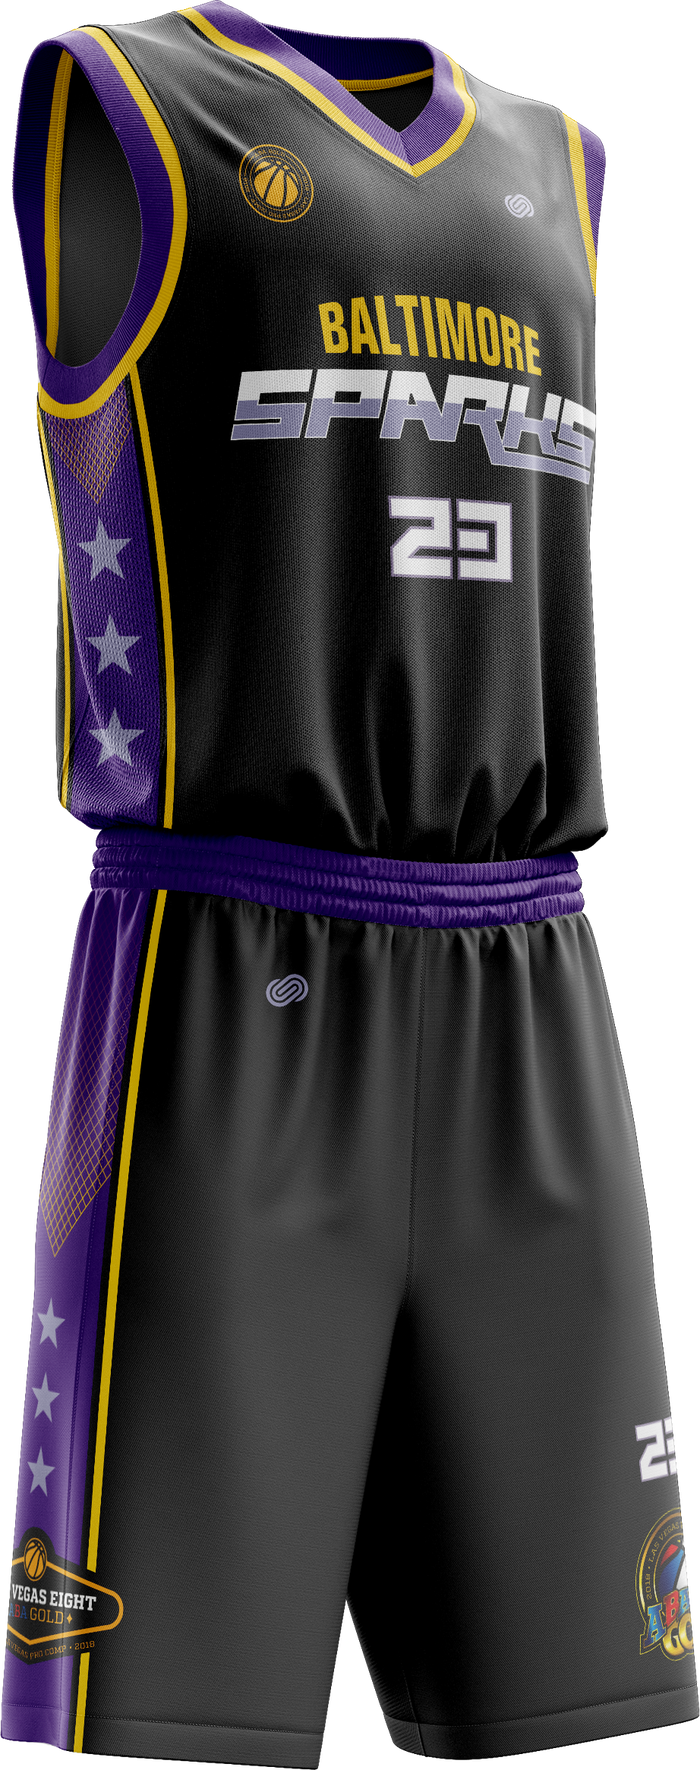 Baltimore Sparks Home Uniform